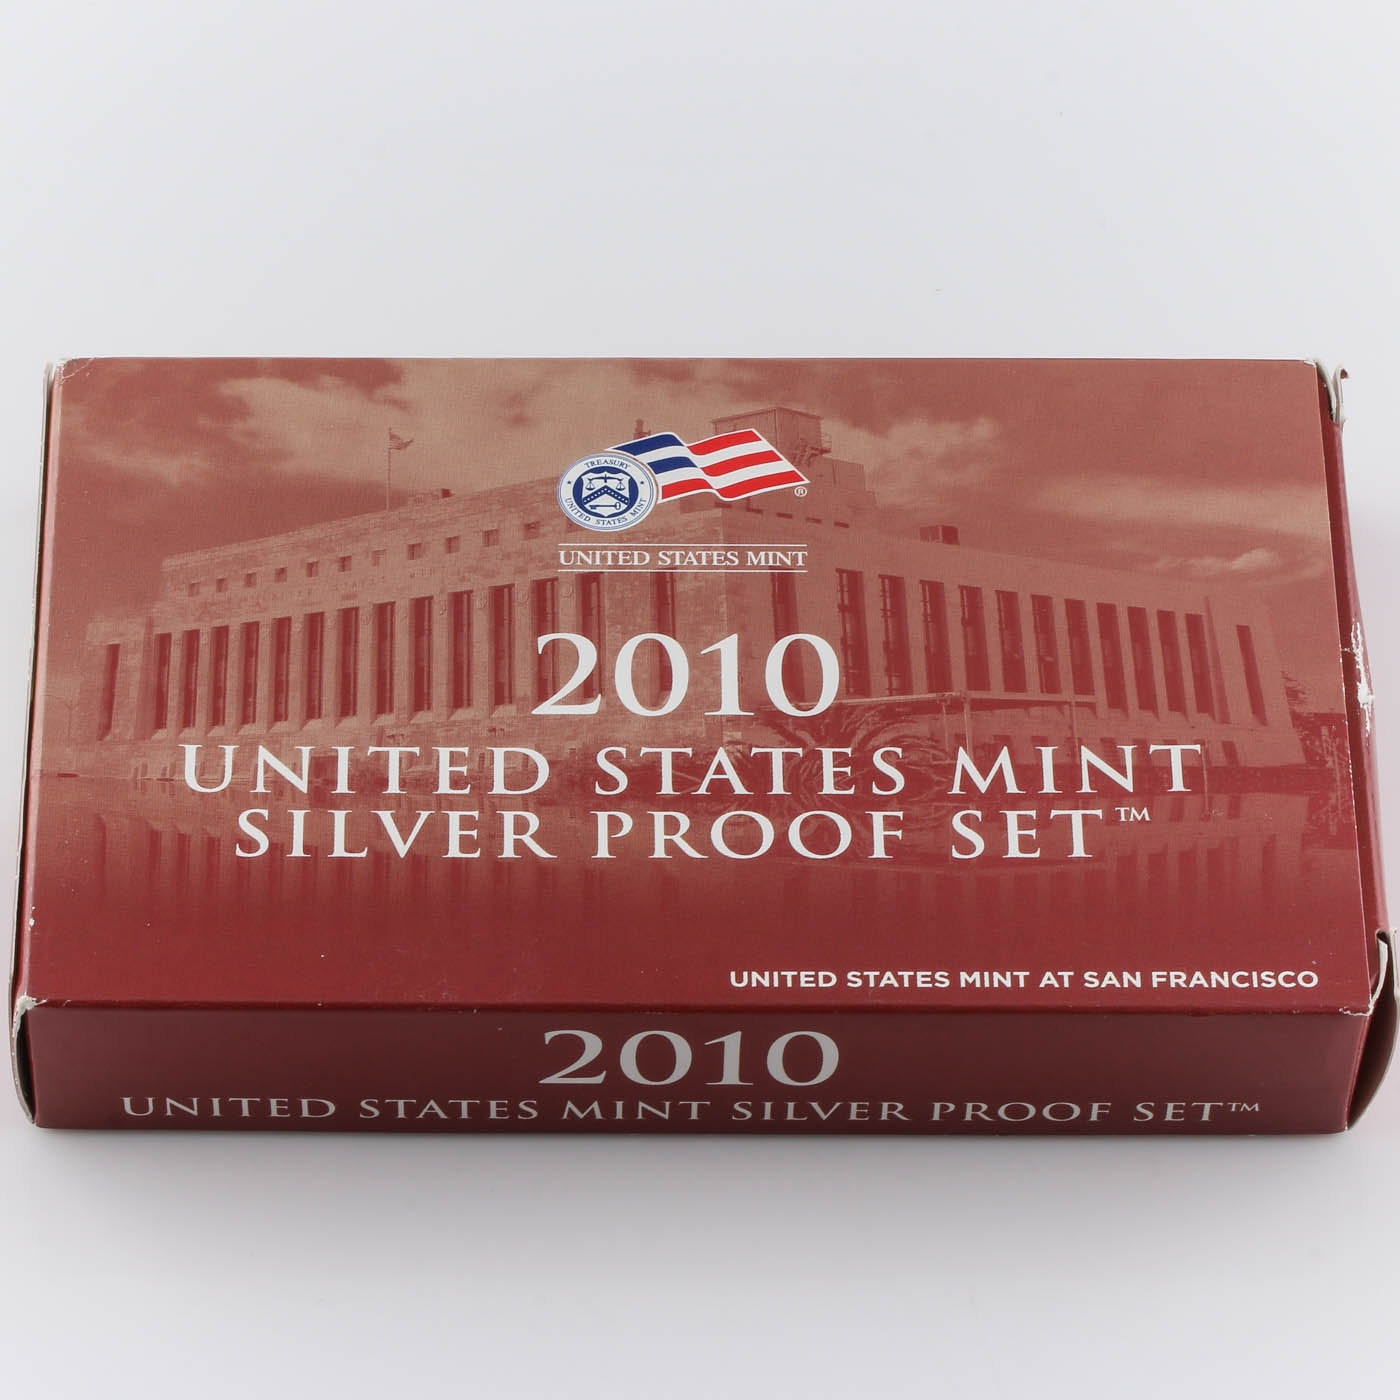 Awesome 2010 United States Mint Silver Proof Set Ebth United States Mint Proof Set Of Charming 43 Photos United States Mint Proof Set